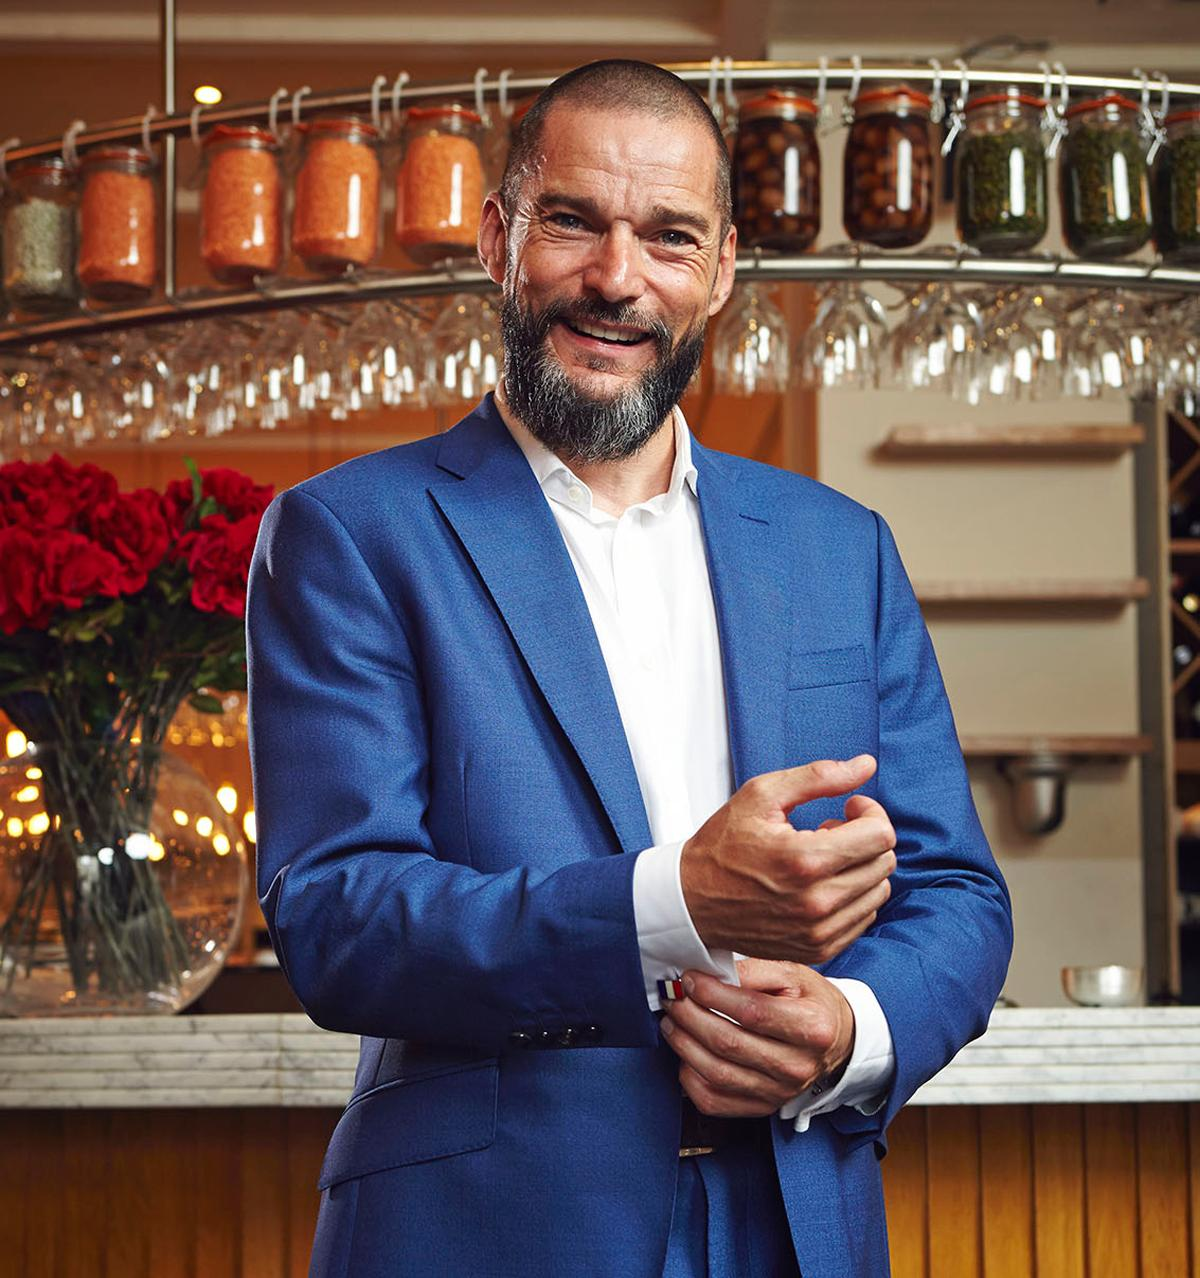 Celebrity Maitre D Fred Sirieix has helped promote the My Hospitality World campaign